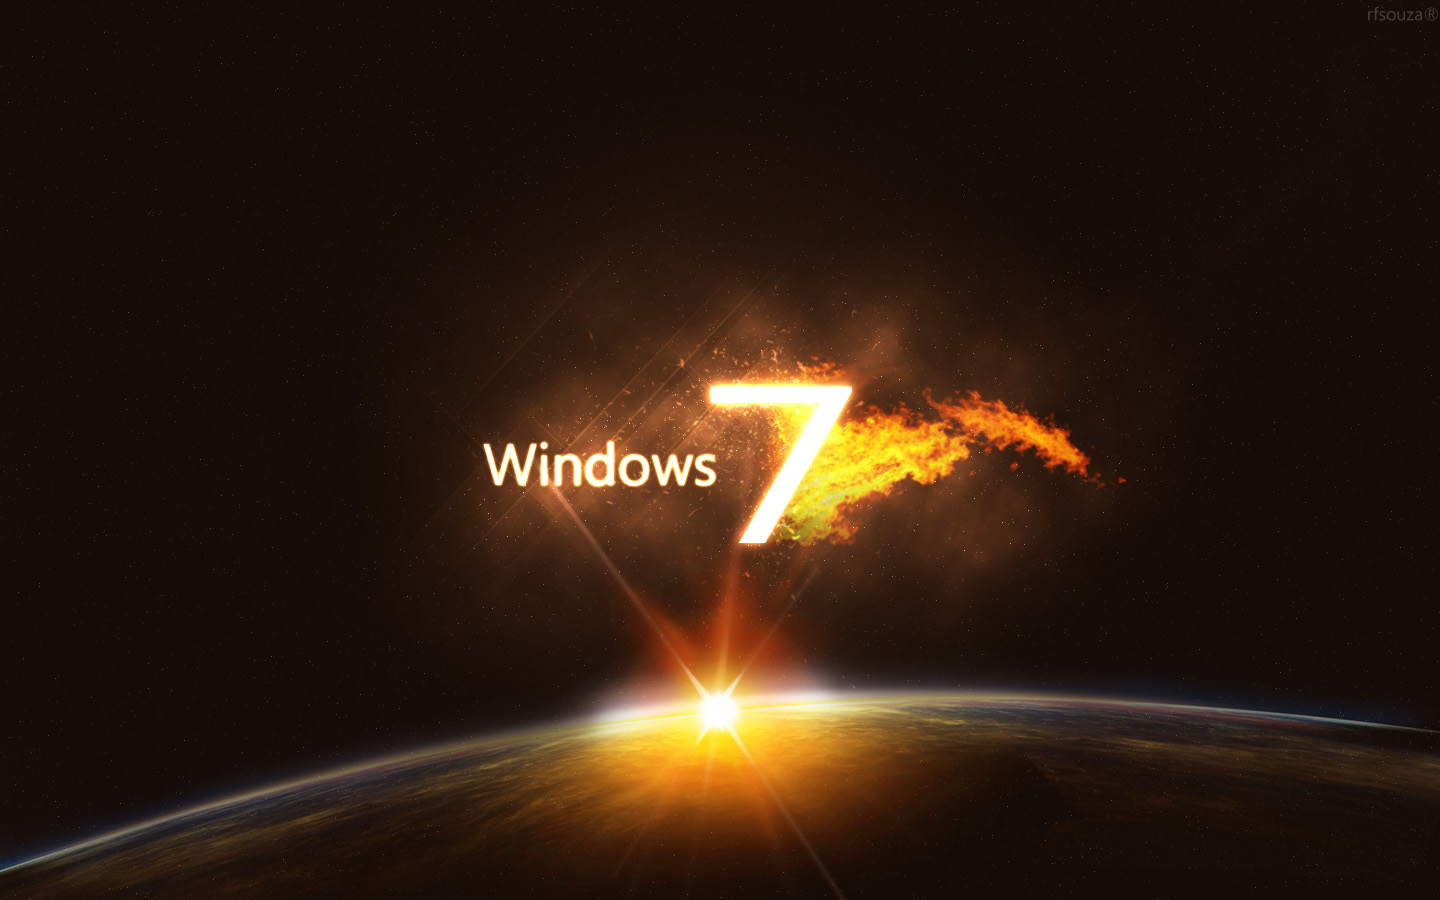 http://1.bp.blogspot.com/-4DGUazo0CXU/UApQyNo0ieI/AAAAAAAADJ0/XfEutEvAnTg/s1600/Fire-Windows-7-Wallpaper.jpg